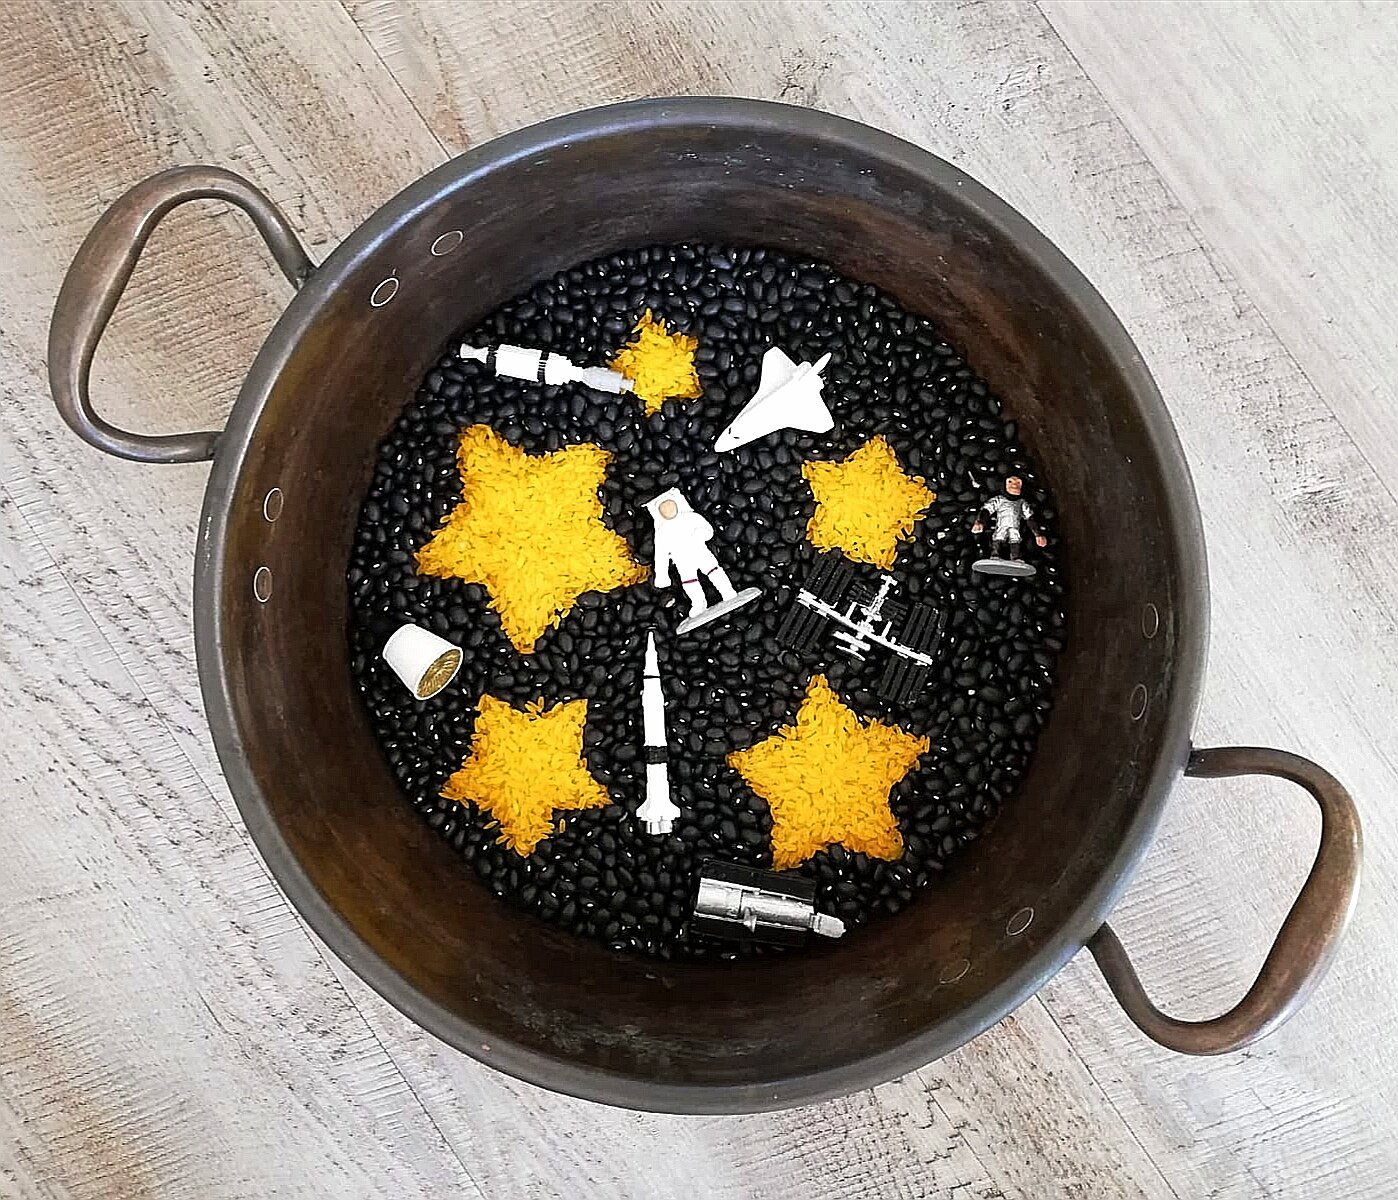 eyfs - toddler - preschool - pre-k - sensory play- messy play - rice play - small world - playscape - playscene - learning through play - play matters - space - spaceman - astronaut- solar system - moon - planets